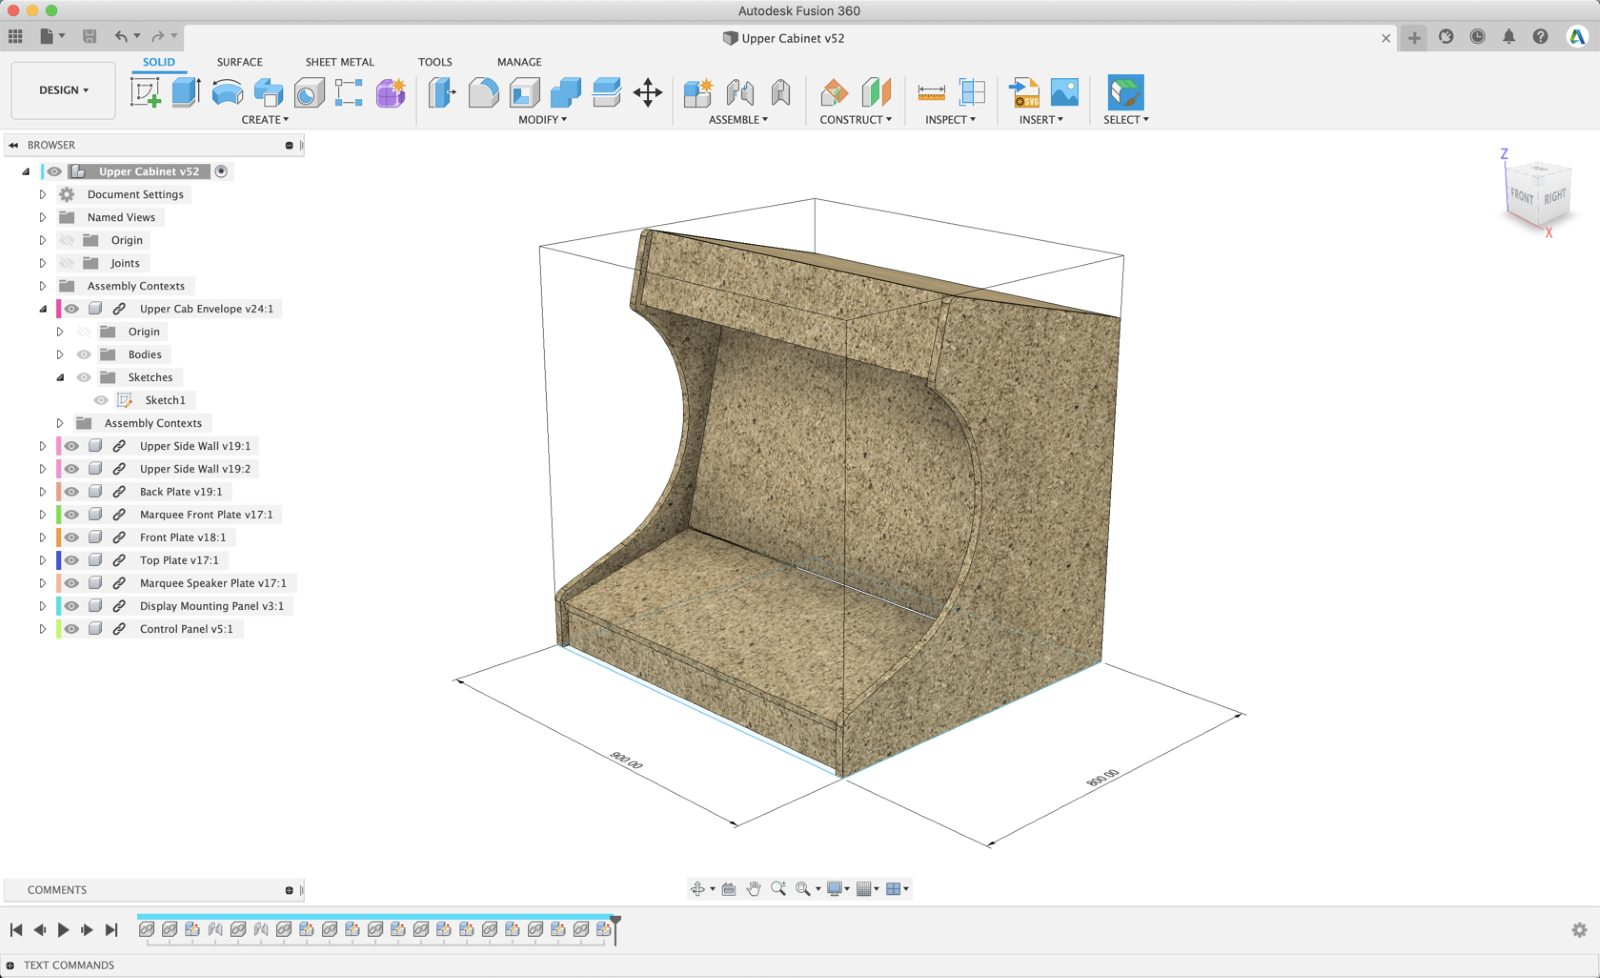 fusion-360-sync-all-assembly-contexts-command-automation